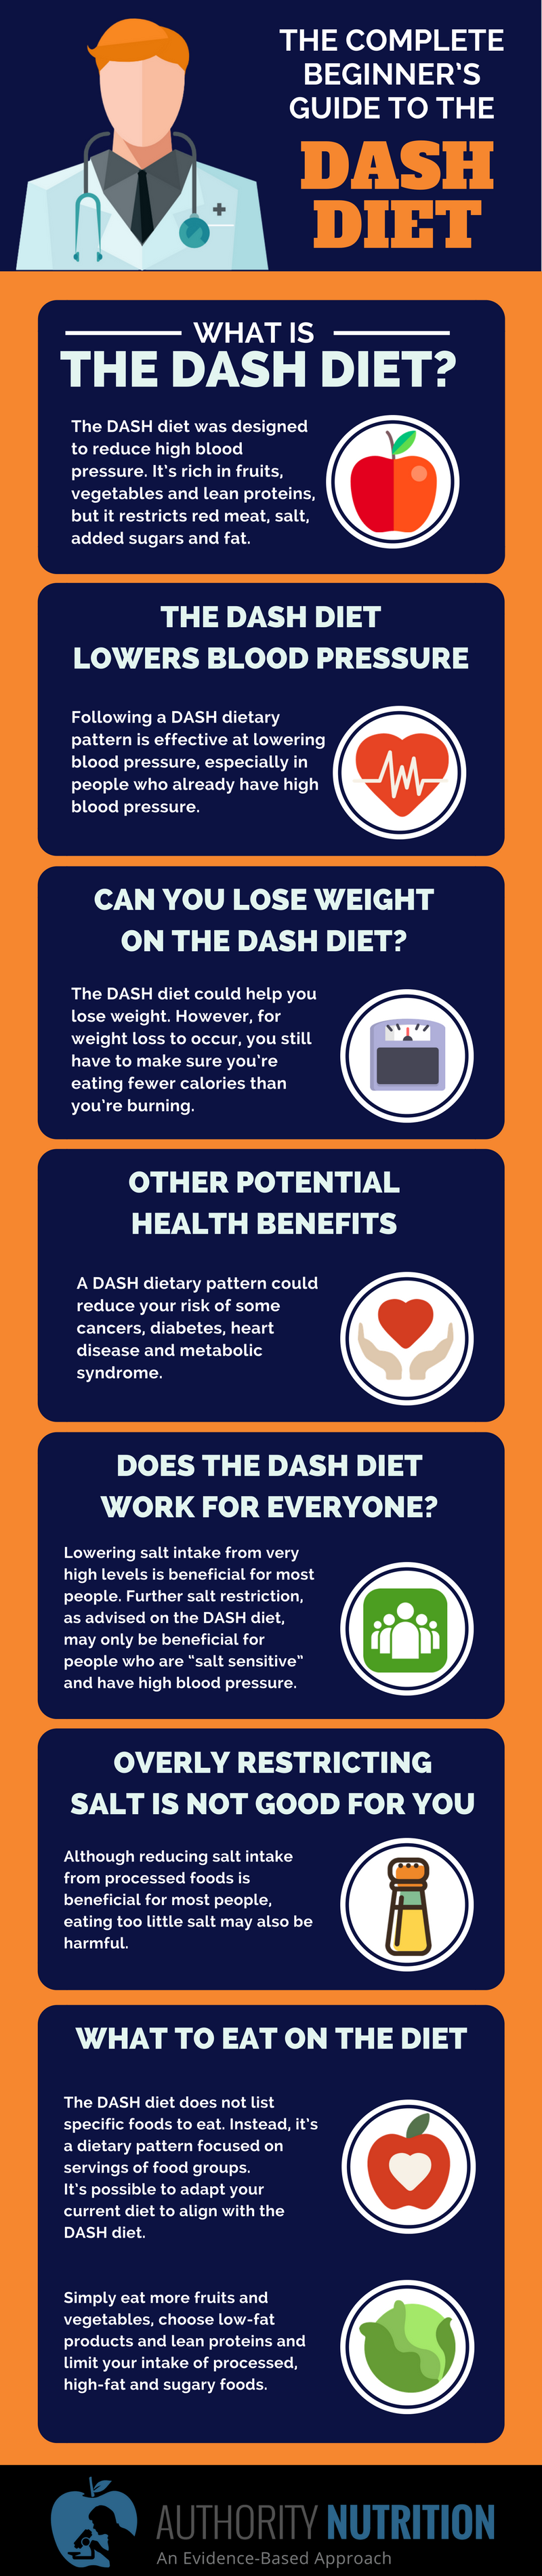 Colour therapy for high bp - The Complete Beginner S Guide To The Dash Diet